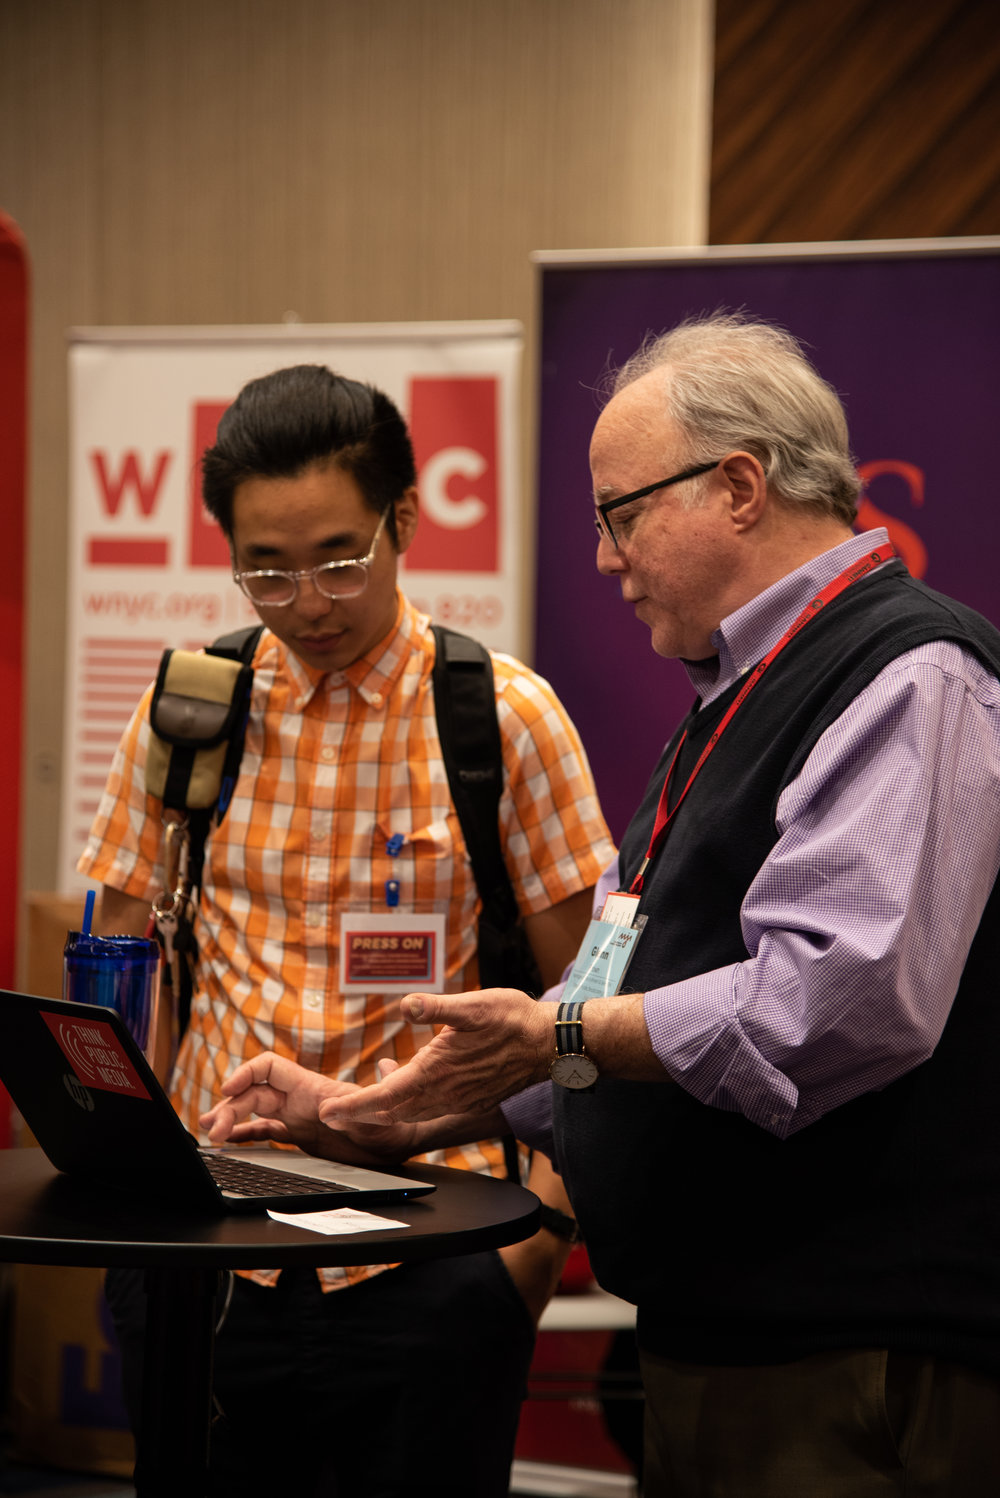 Glenn Brown, from Oregon Public Broadcasting, assists a conference attendee as they register on our website.